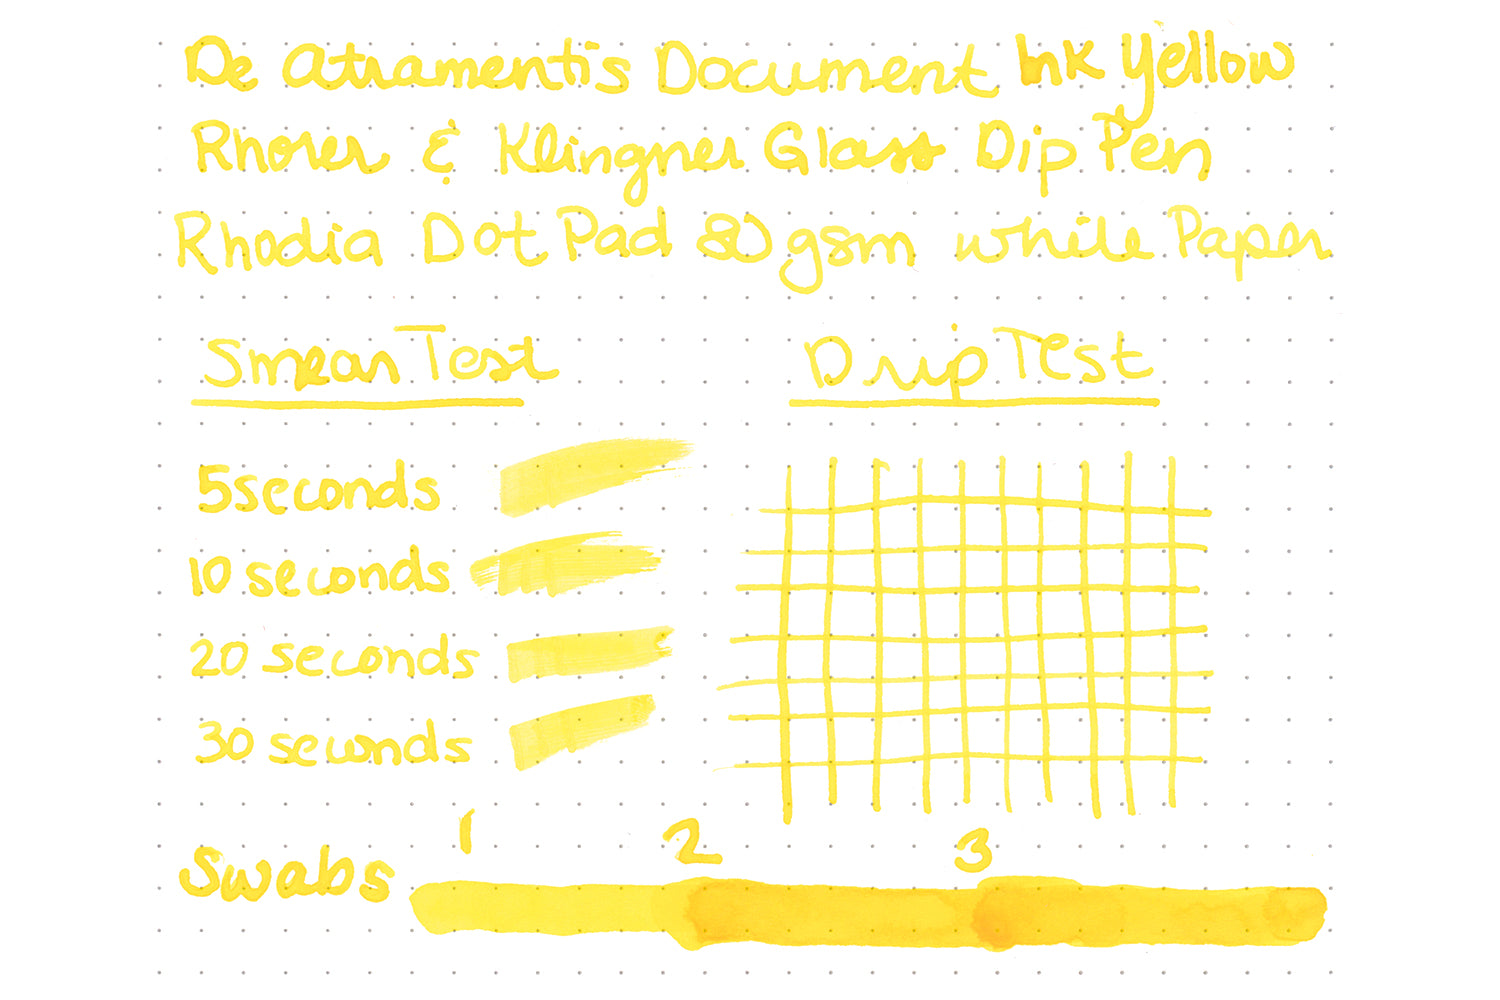 De Atramentis Document Ink Yellow - Ink Sample